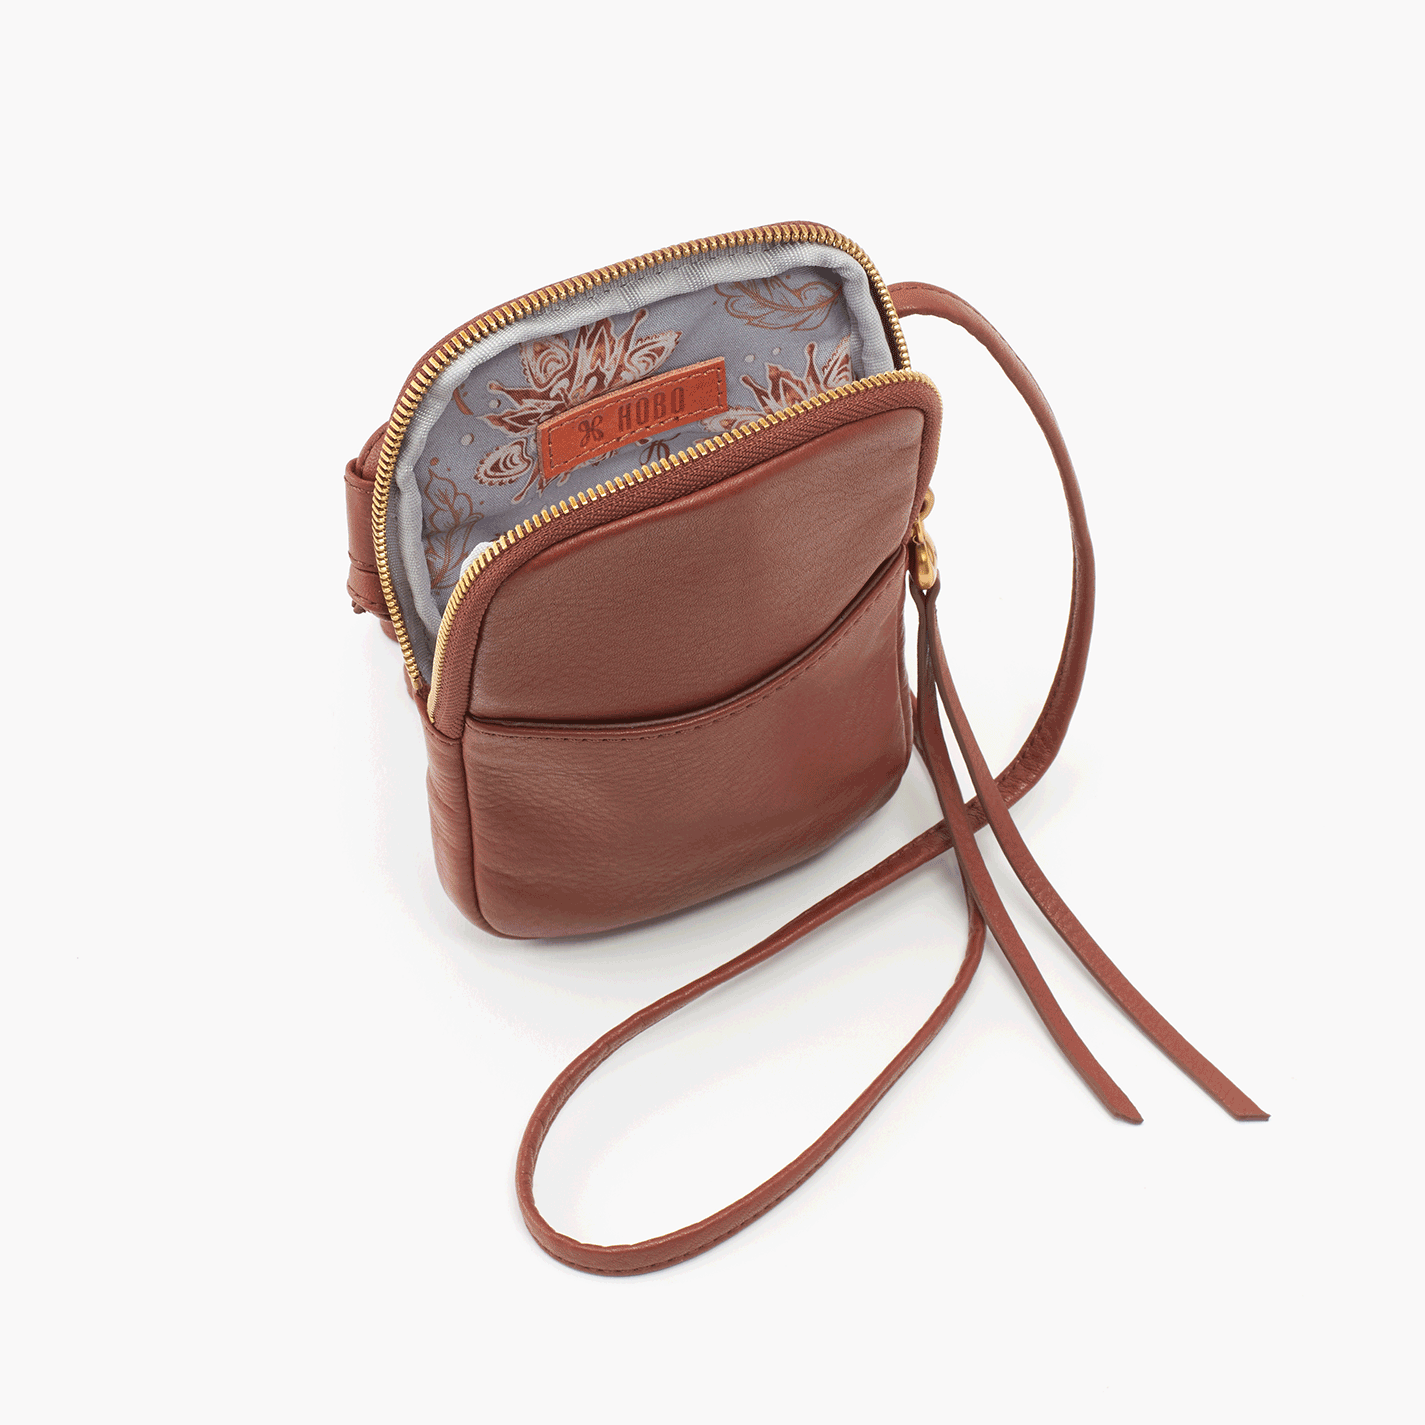 HOBO - FATE CROSSBODY IN TOFFEE